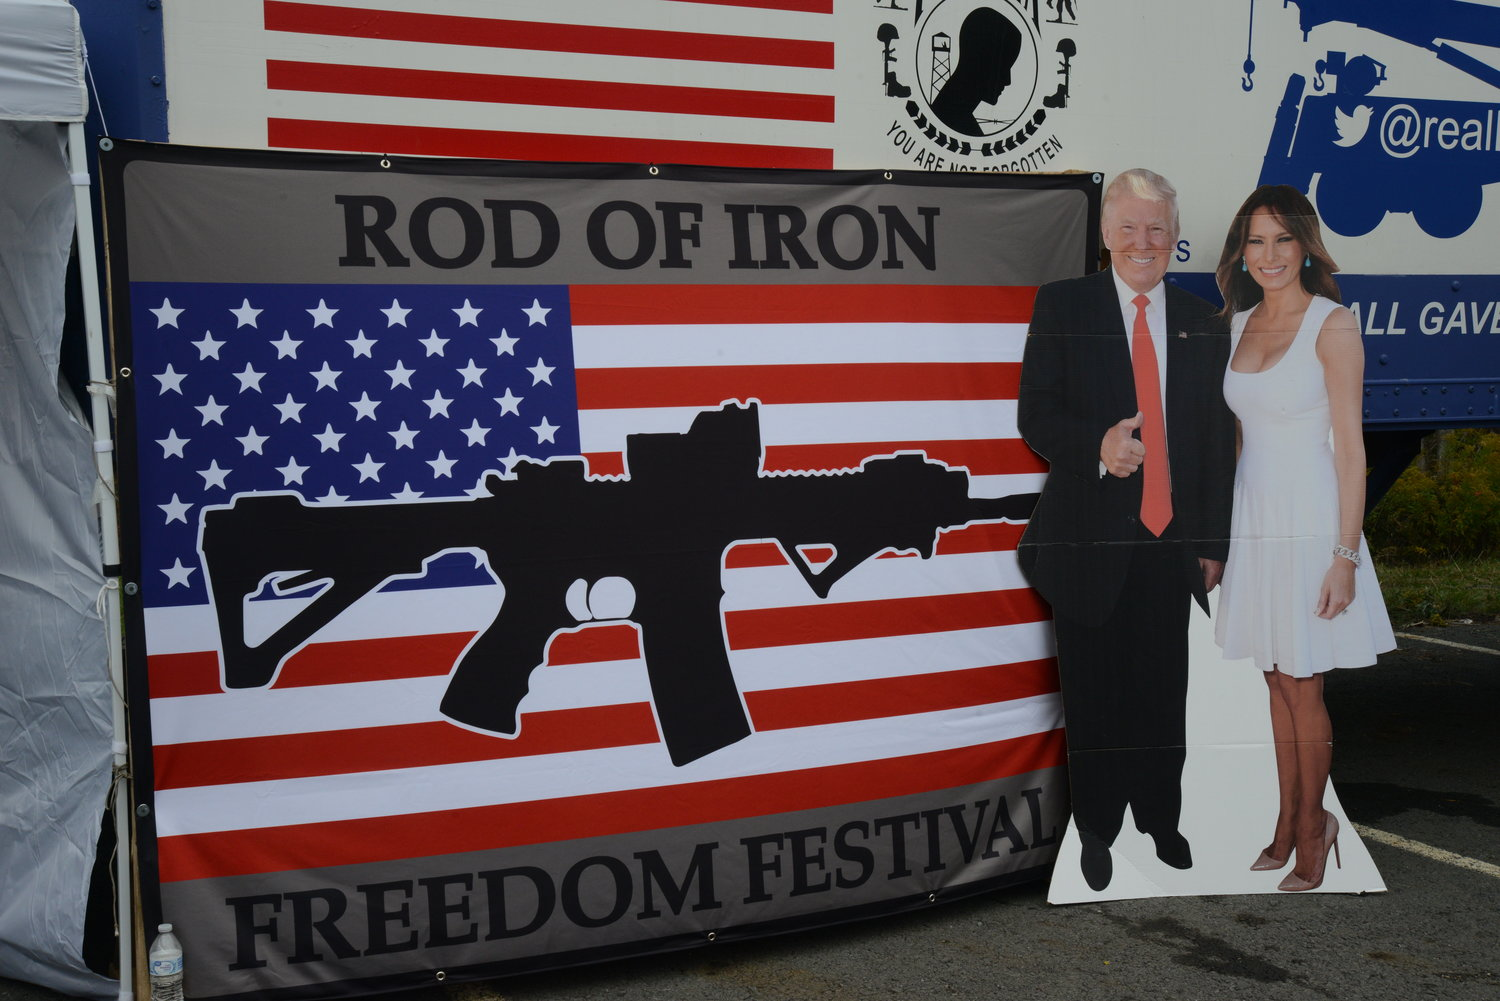 The Rod of Iron Freedom Festival was fraught with political rhetoric and imagery.